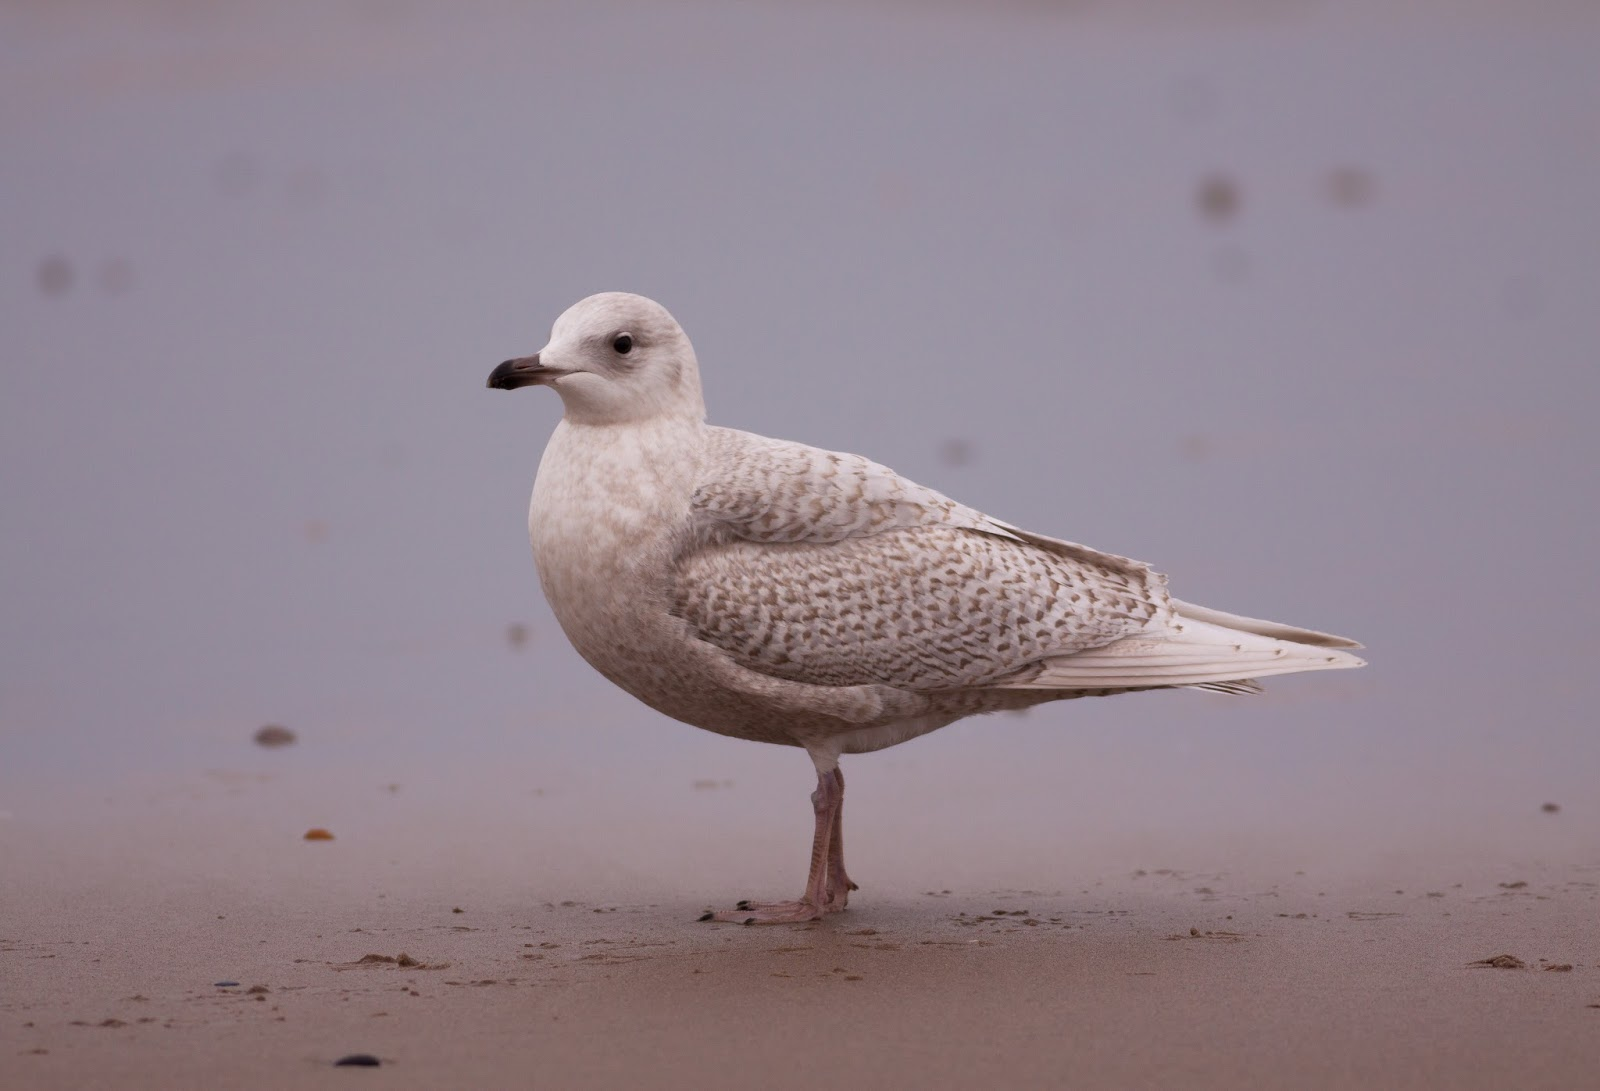 Iceland Gull - Pensarn, North Wales